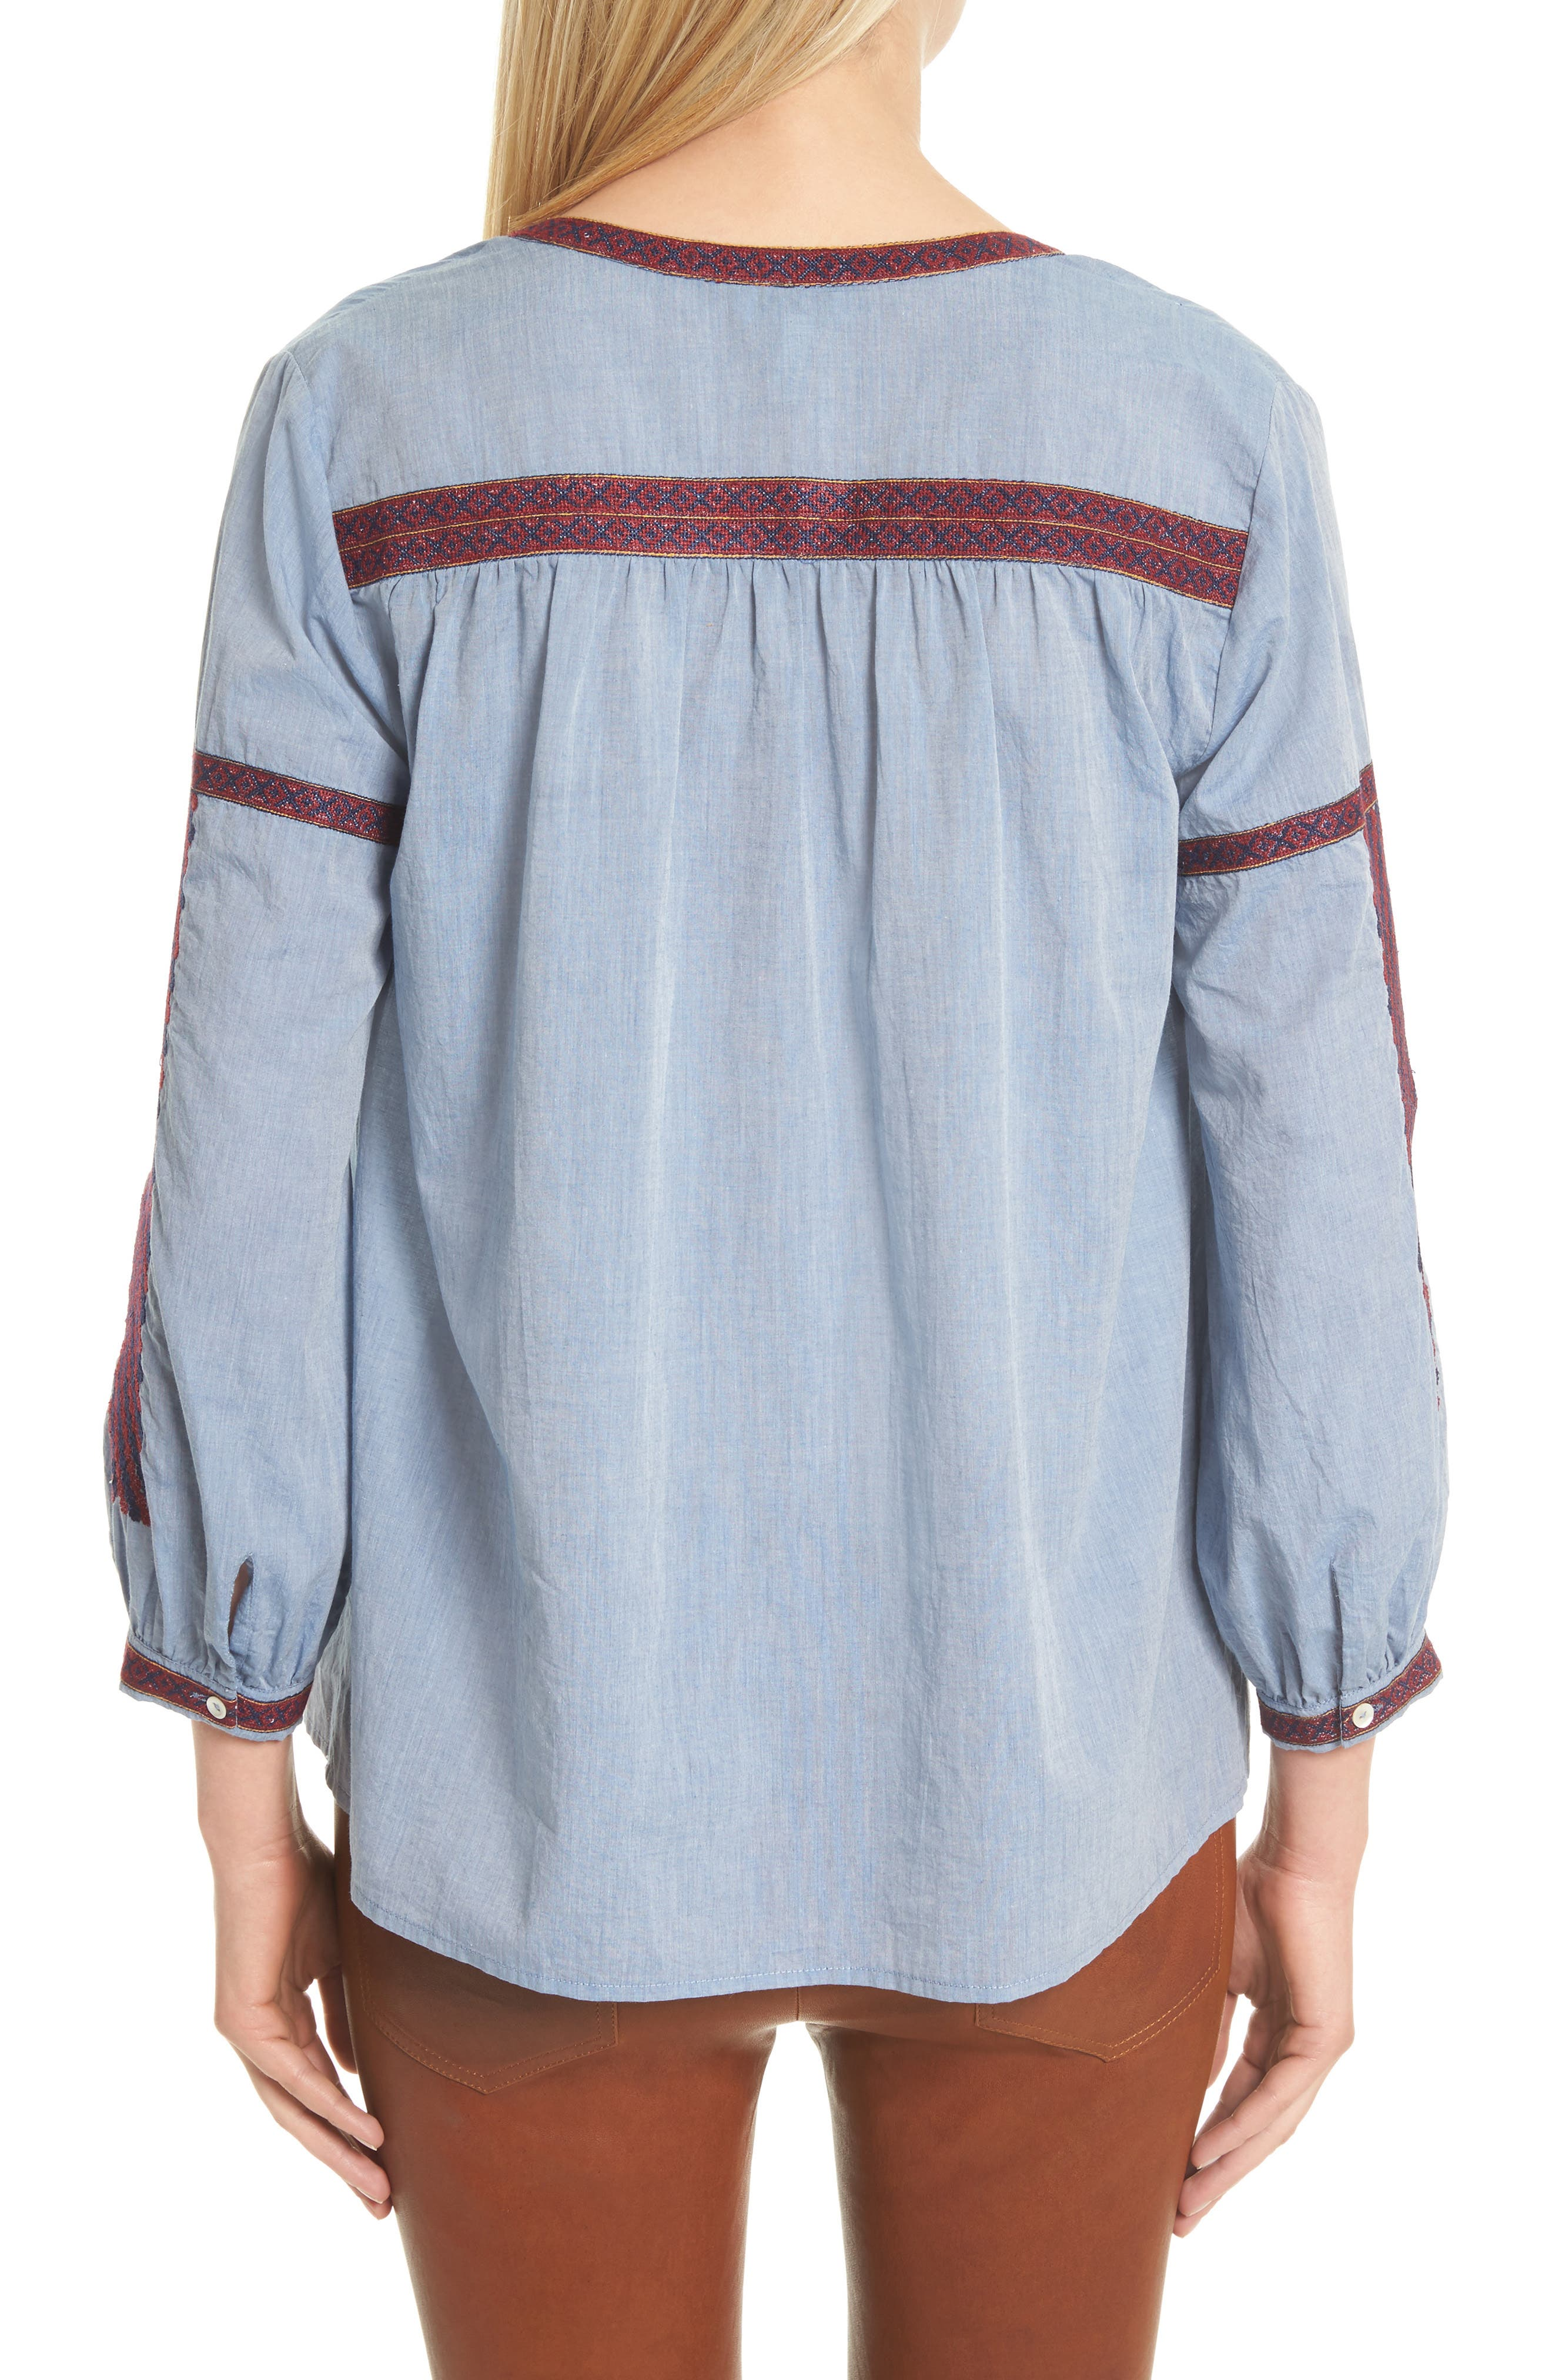 Alternate Image 2  - Joie Marlen Embroidered Chambray Top